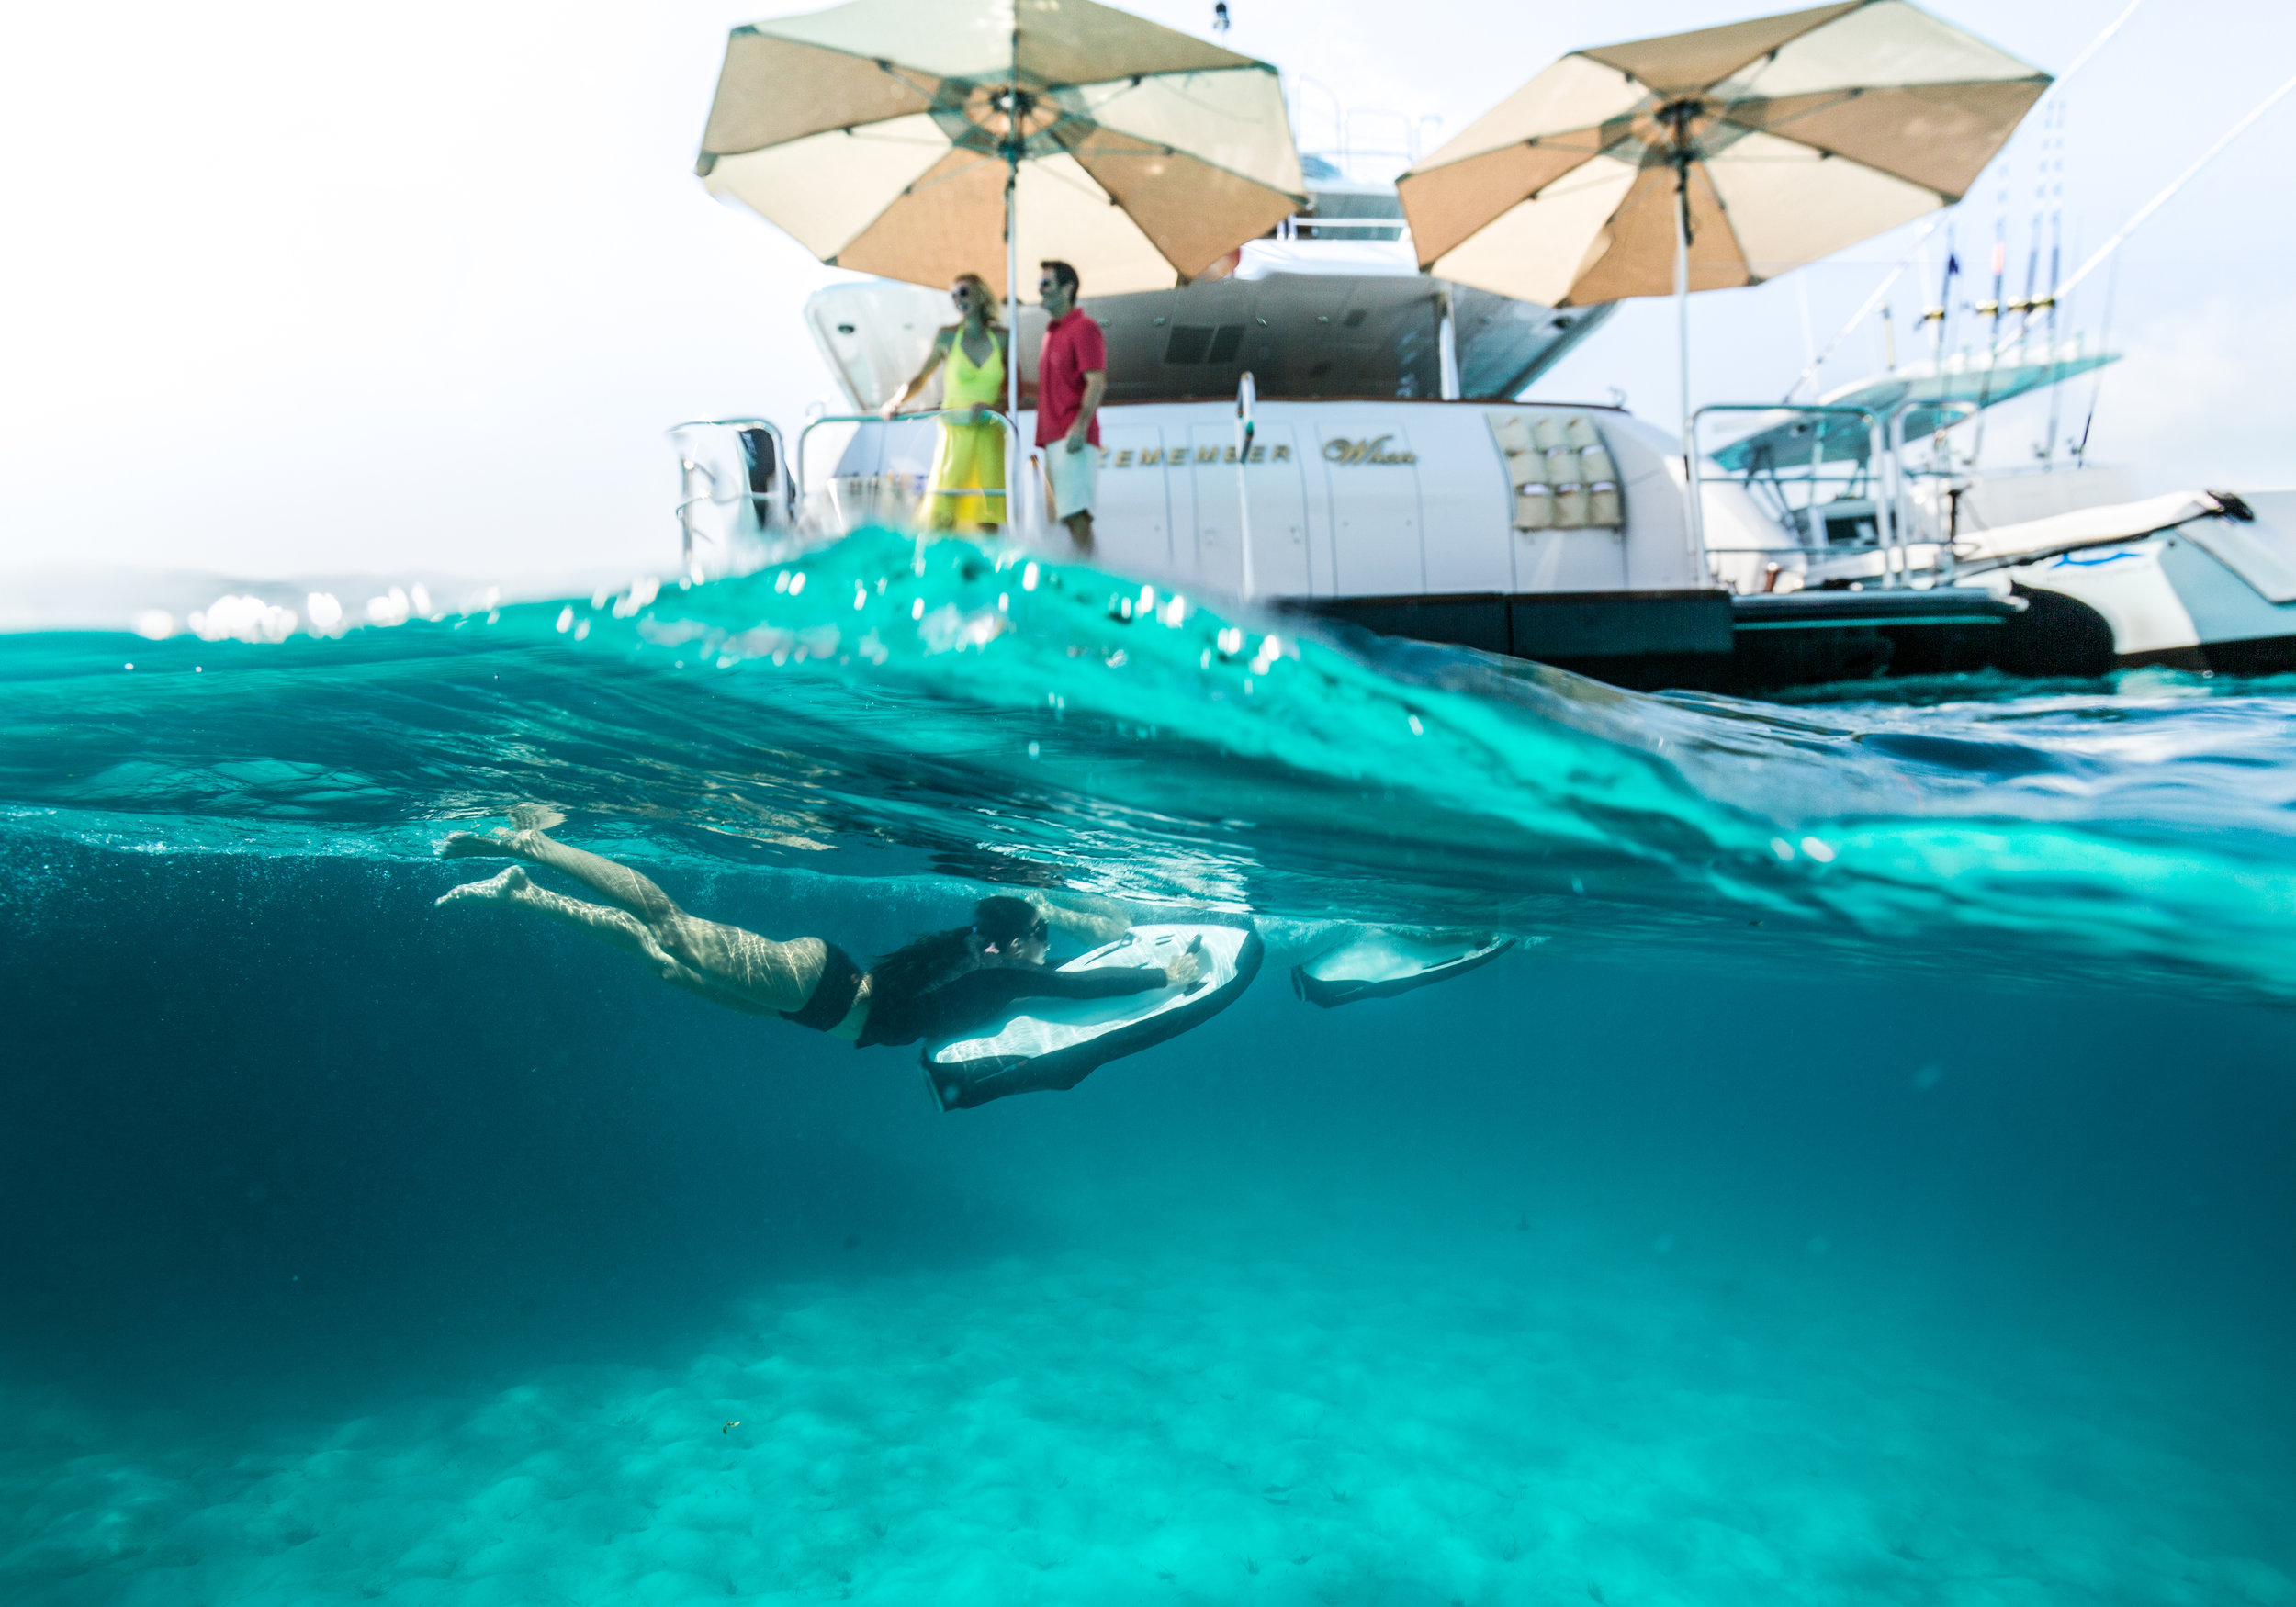 The Seabobs provide endless fun over and under the water